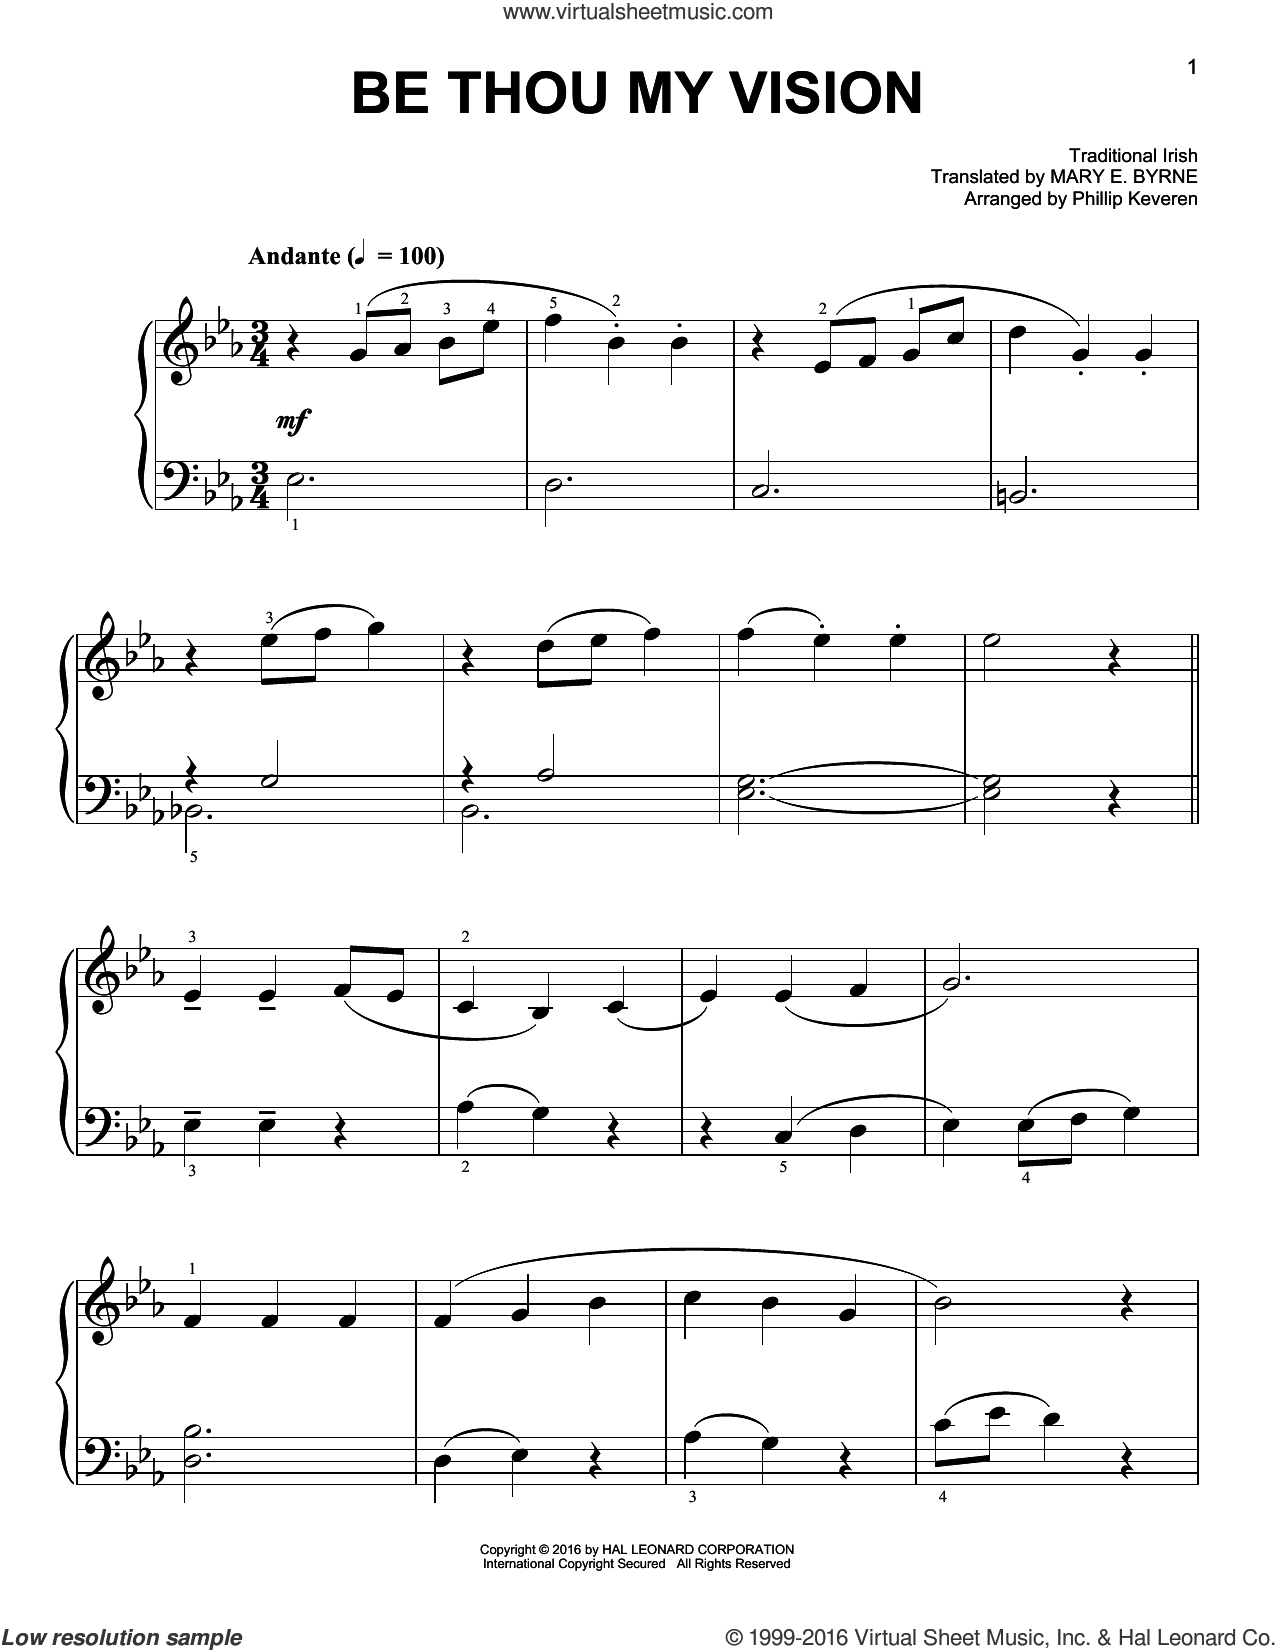 Be Thou My Vision sheet music for piano solo by Traditional Irish and Phillip Keveren. Score Image Preview.